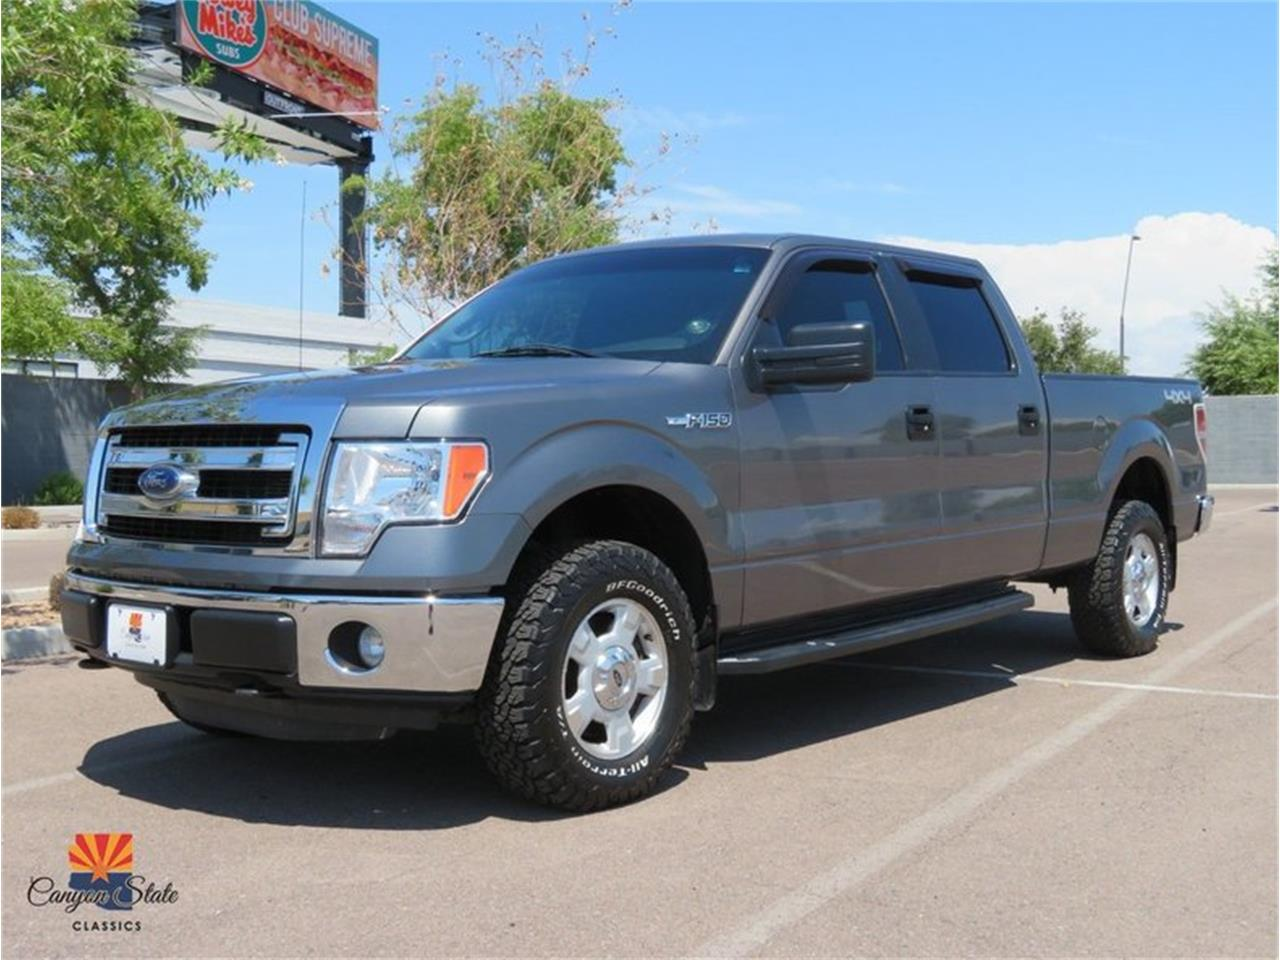 2014 Ford F150 for sale in Tempe, AZ – photo 5